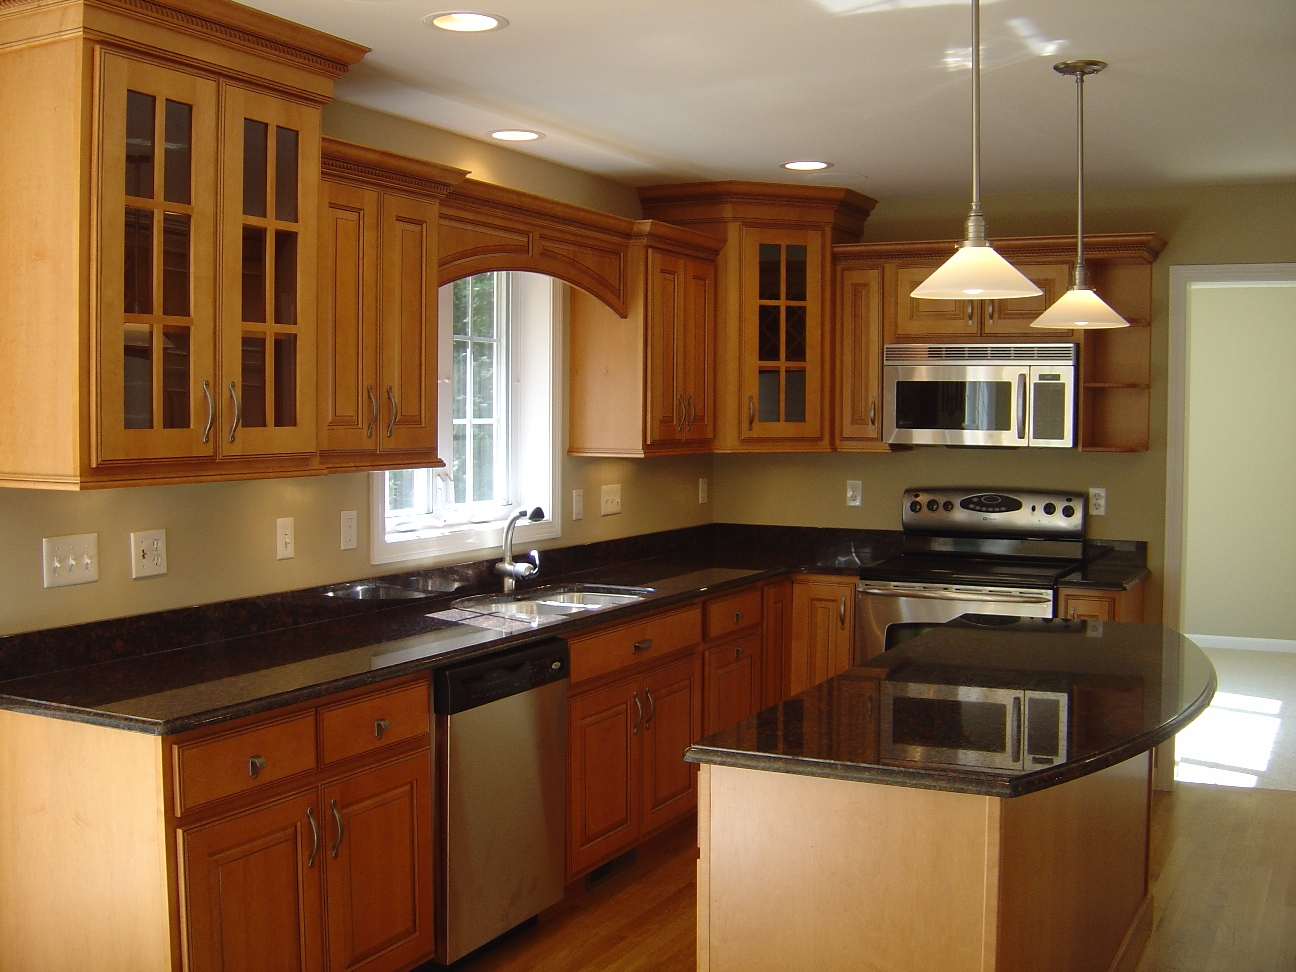 Kitchen designs photos find kitchen designs for Small kitchen design ideas gallery